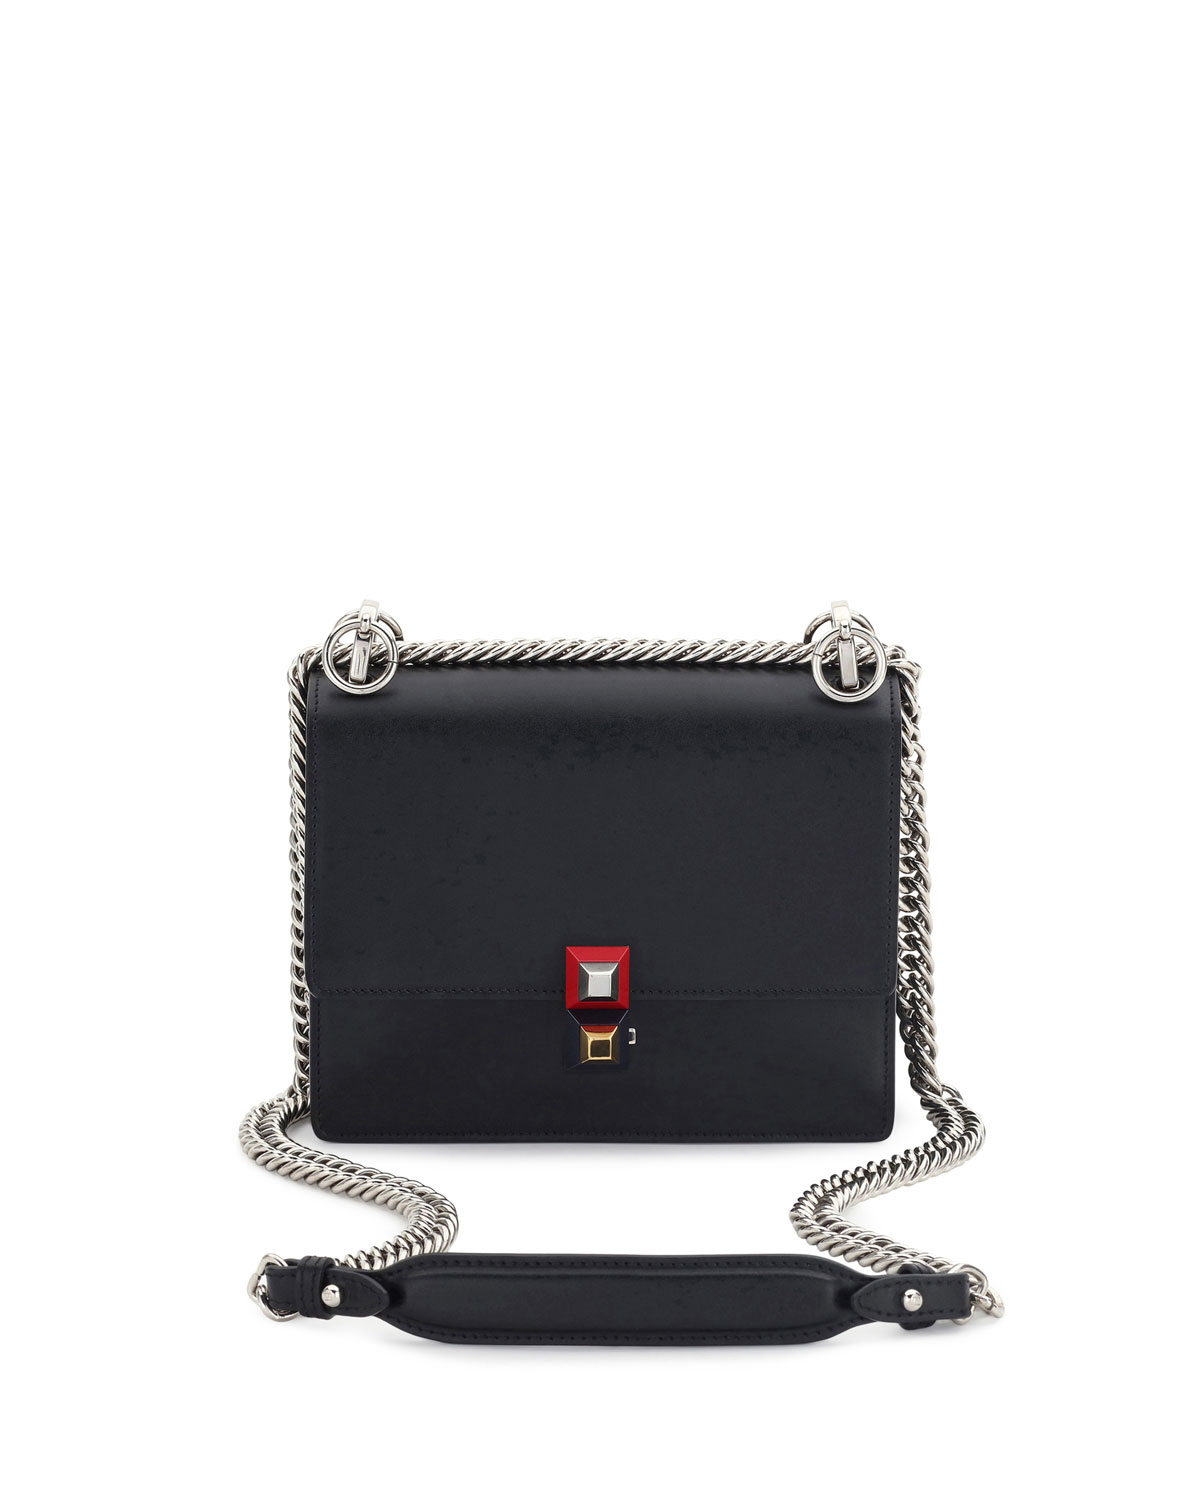 Fendi Chain Leather Marcus Mini BagBlackNeiman Shoulder Kan I PX8nk0wO